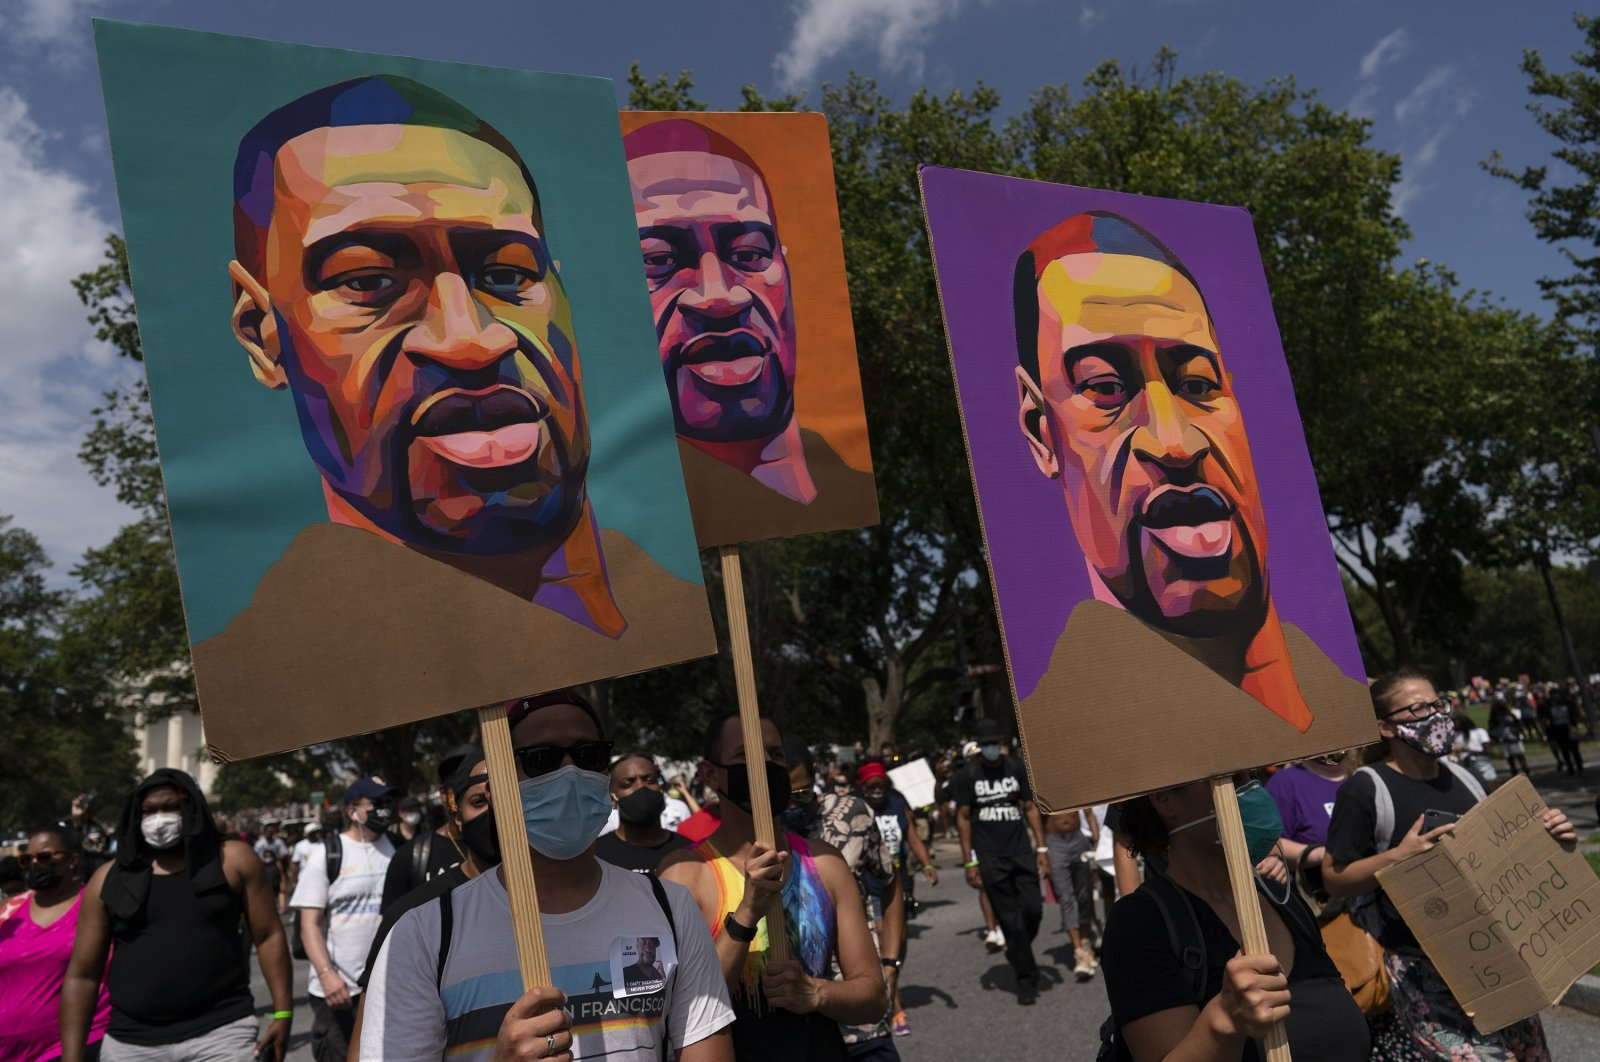 People carry posters of George Floyd as they march from the Lincoln Memorial to the Martin Luther King Jr. Memorial during the March on Washington, Friday Aug. 28, 2020, in Washington. (AP Photo)